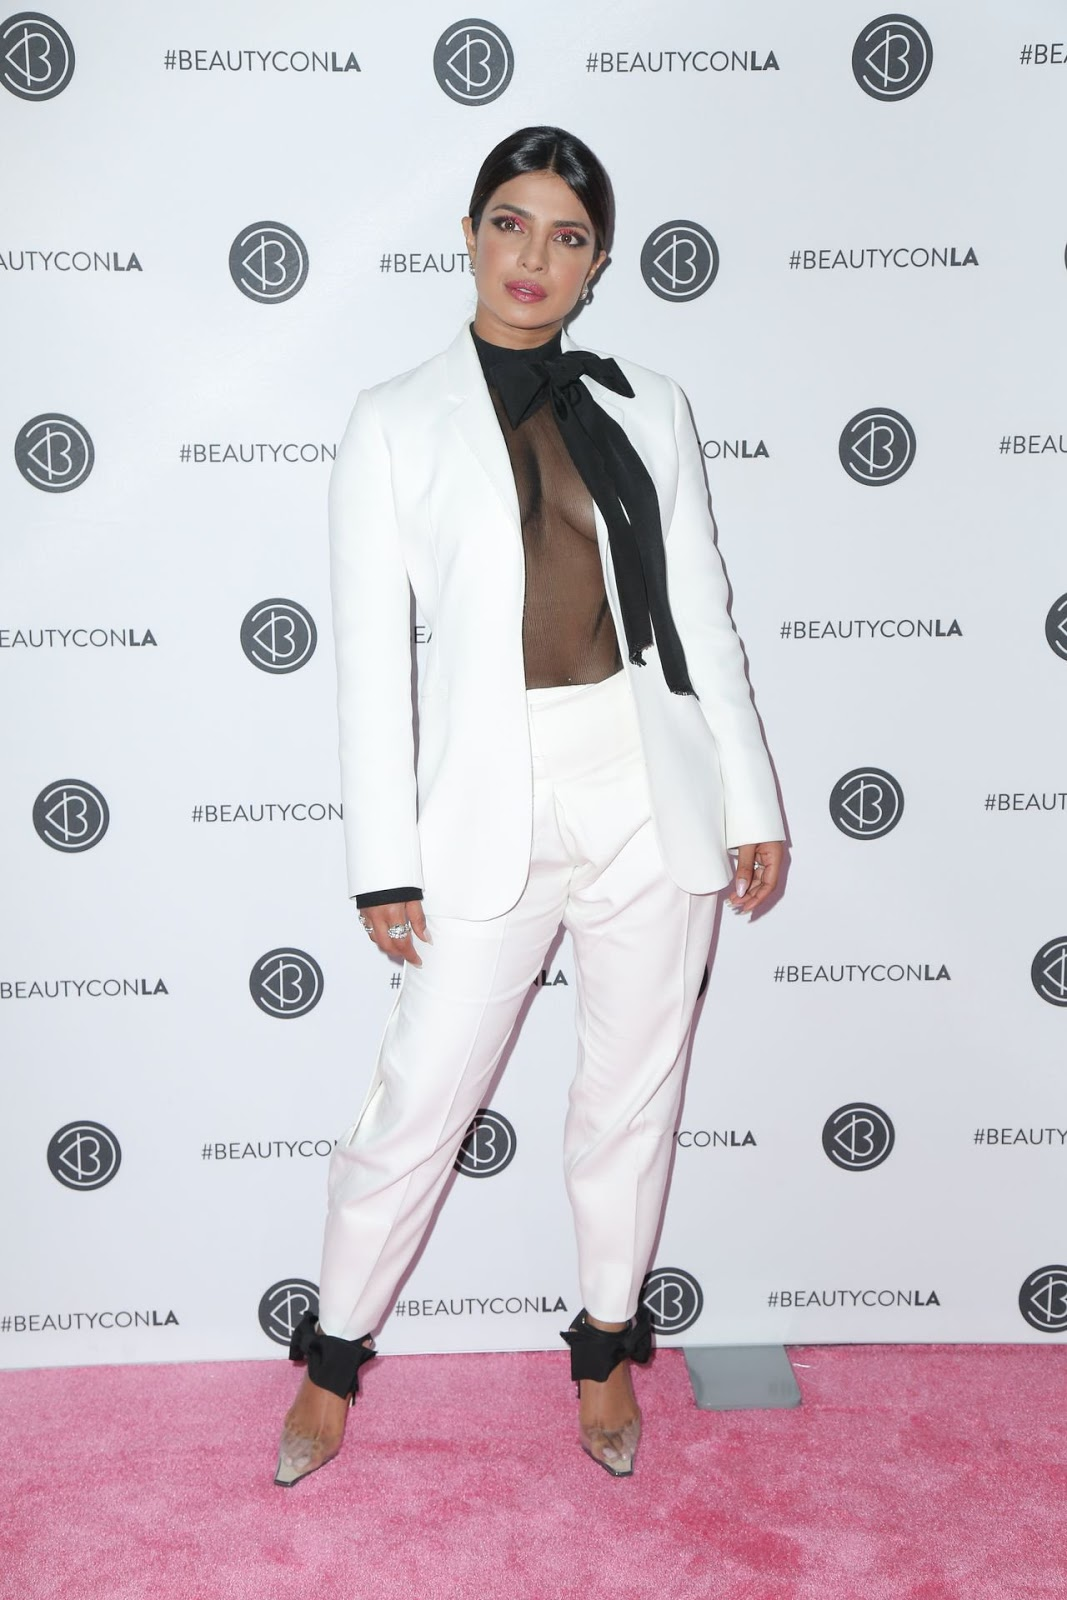 Priyanka Chopra wears racy sheer blouse under a white suit at Beautycon LA